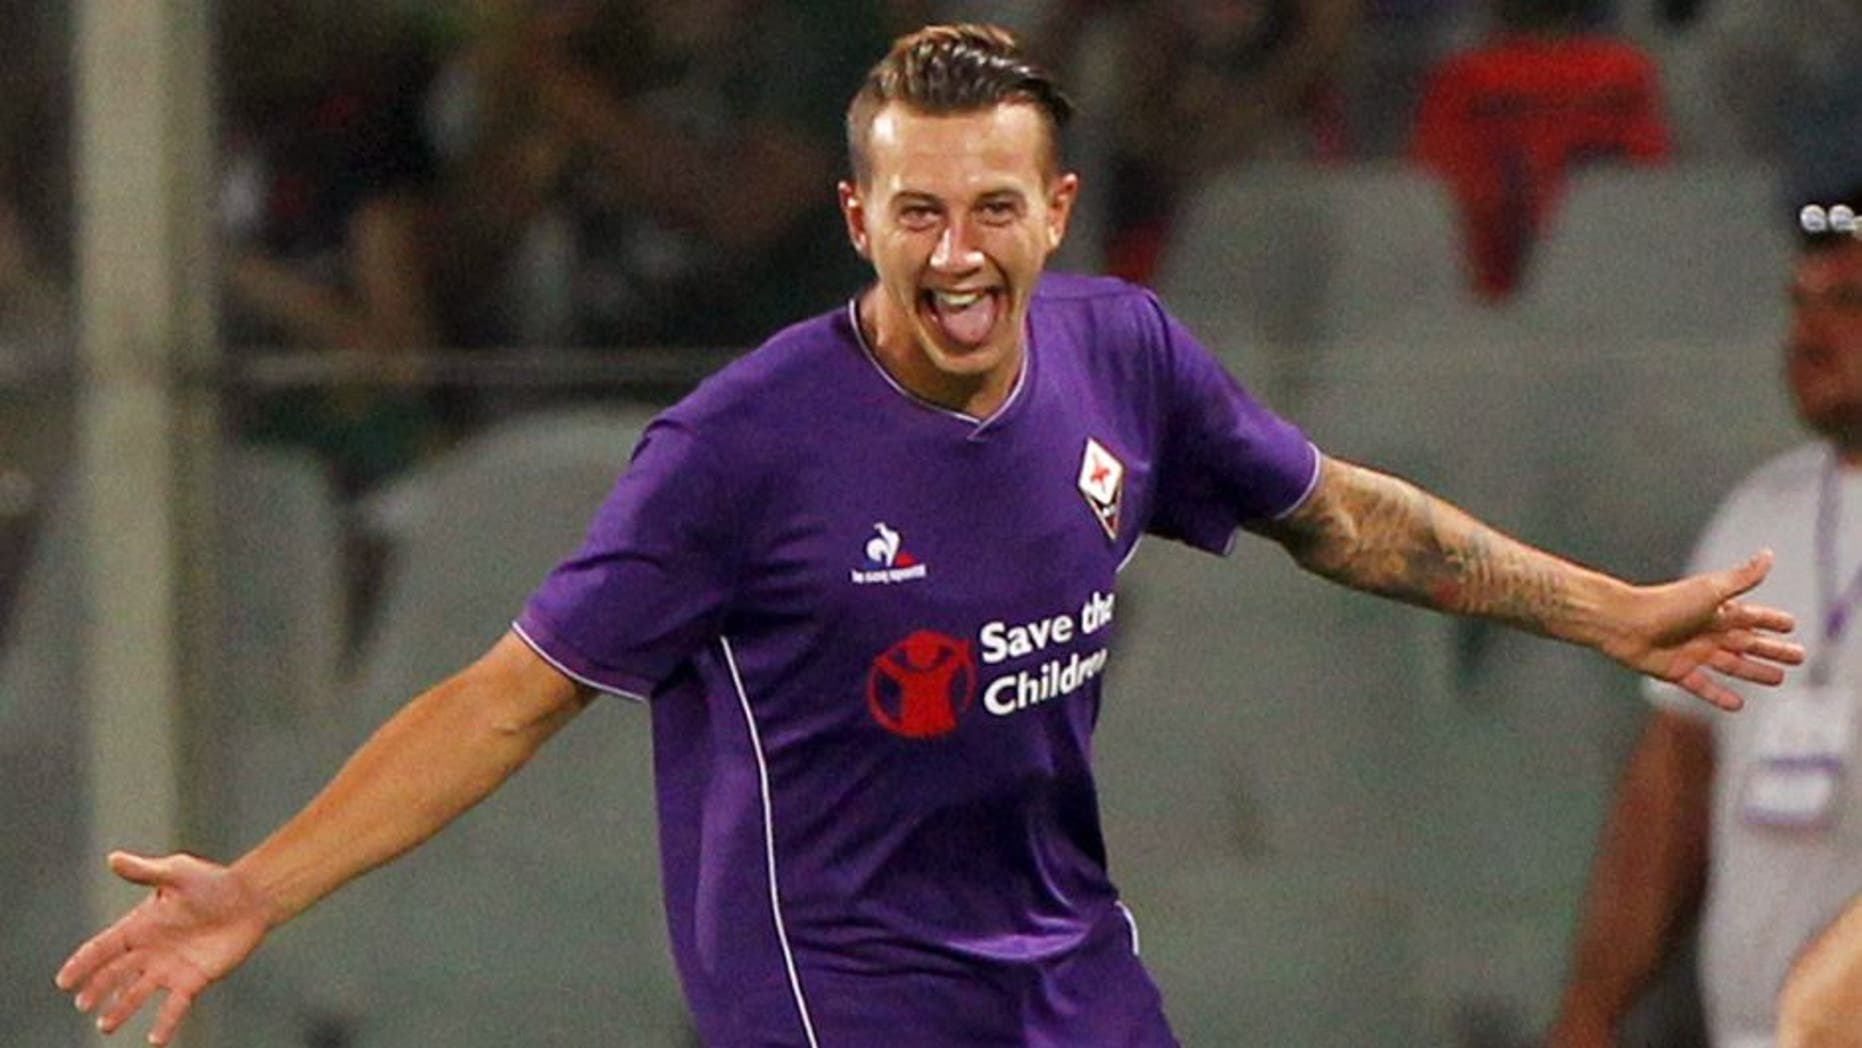 FLORENCE, ITALY - AUGUST 02: Federico Bernardeschi of ACF Fiorentina celebrates after scoring the opening goal during the preseason friendly match between ACF Fiorentina and FC Barcelona at Artemio Franchi on August 2, 2015 in Florence, Italy. (Photo by Paolo Bruno/Getty Images)